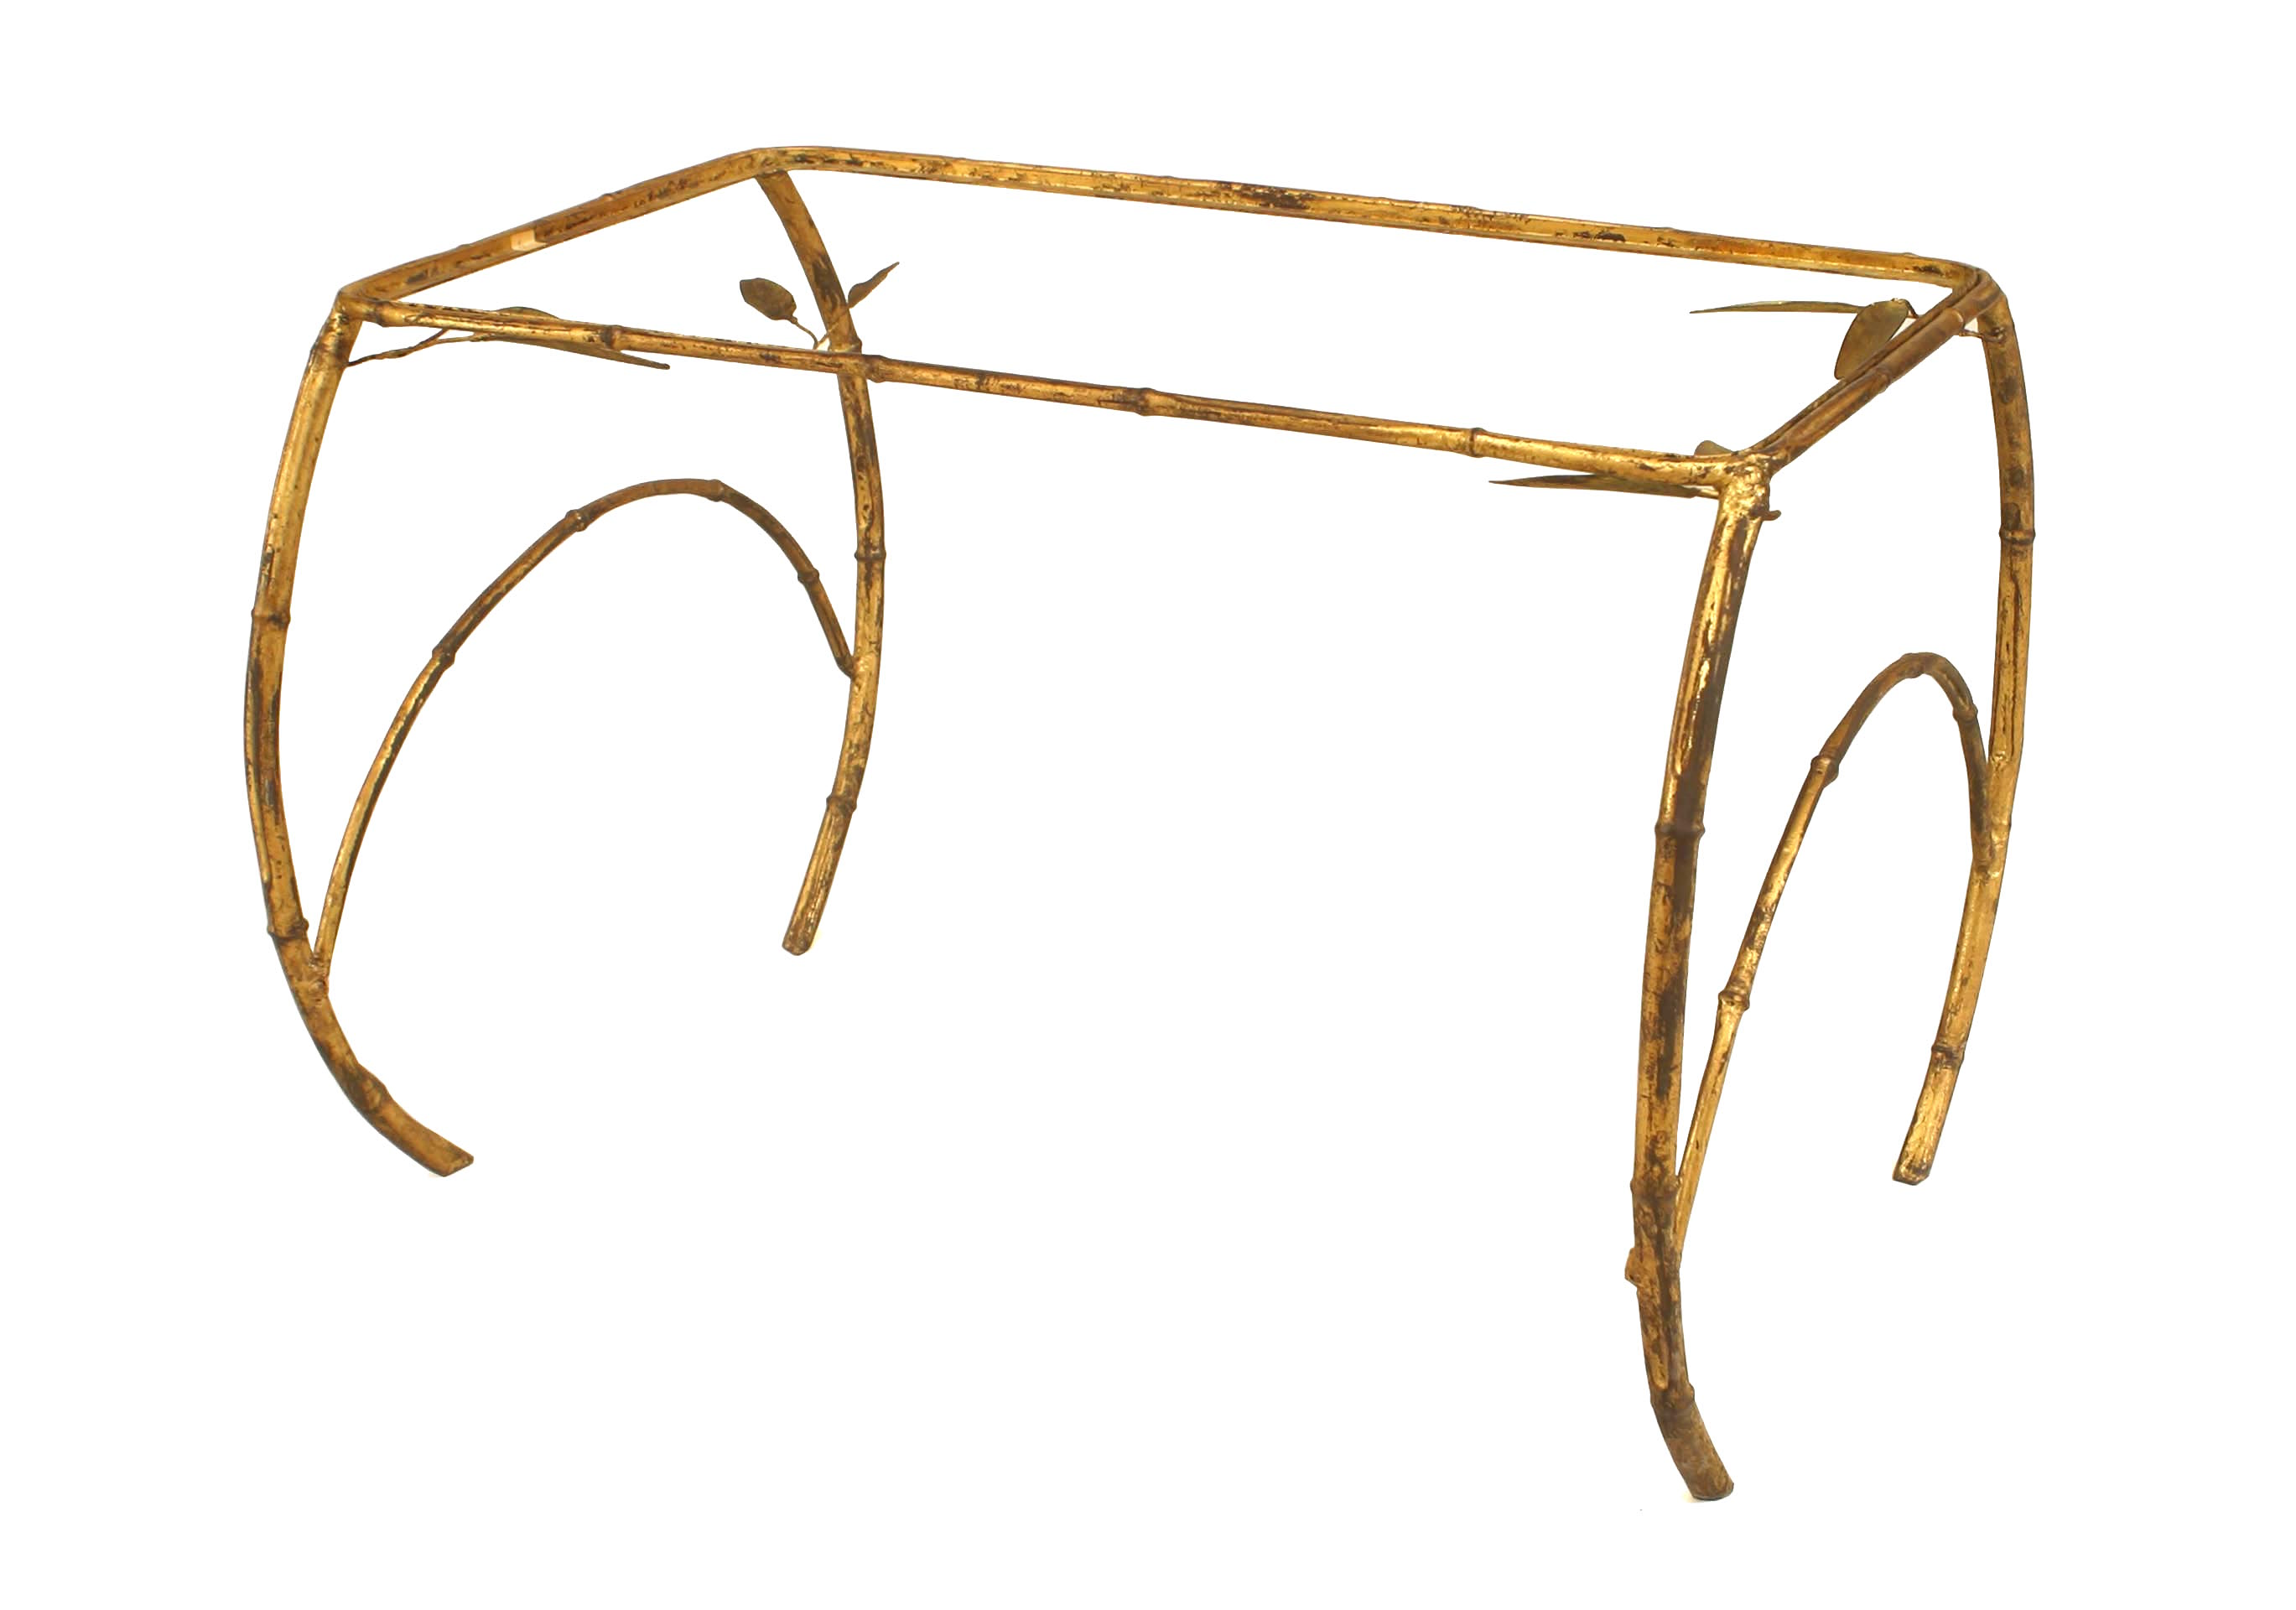 Faux Bamboo S Style Gilt Metal Rectangular Coffee Table With - Bamboo end table glass top